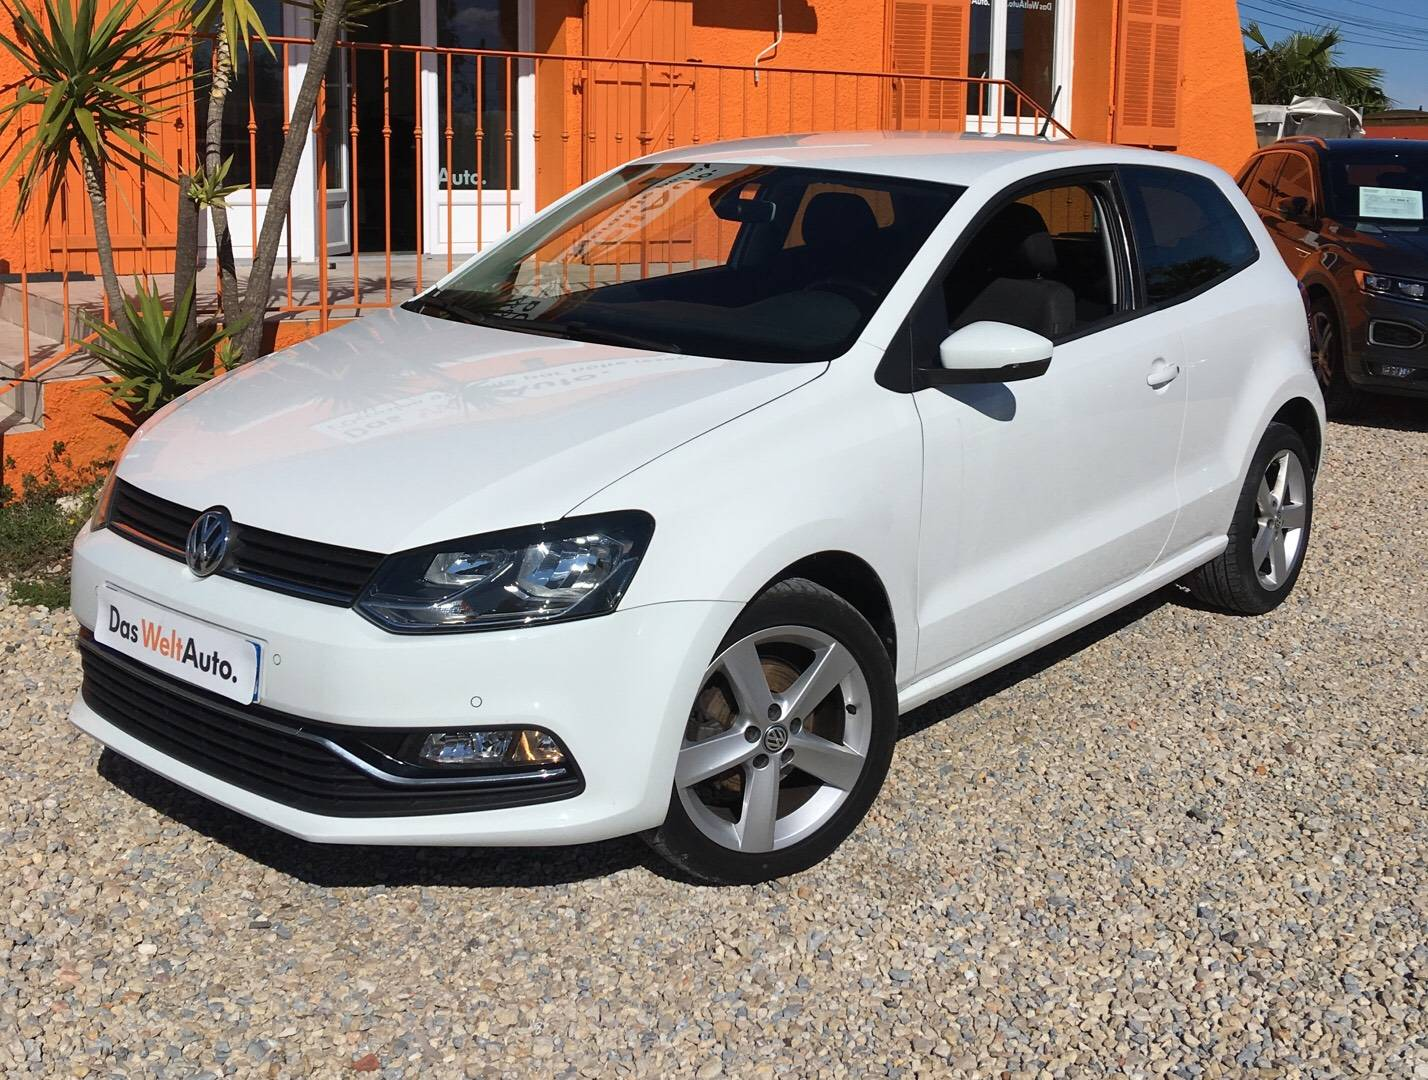 Polo 1.4 TDI 90 BlueMotion Technology